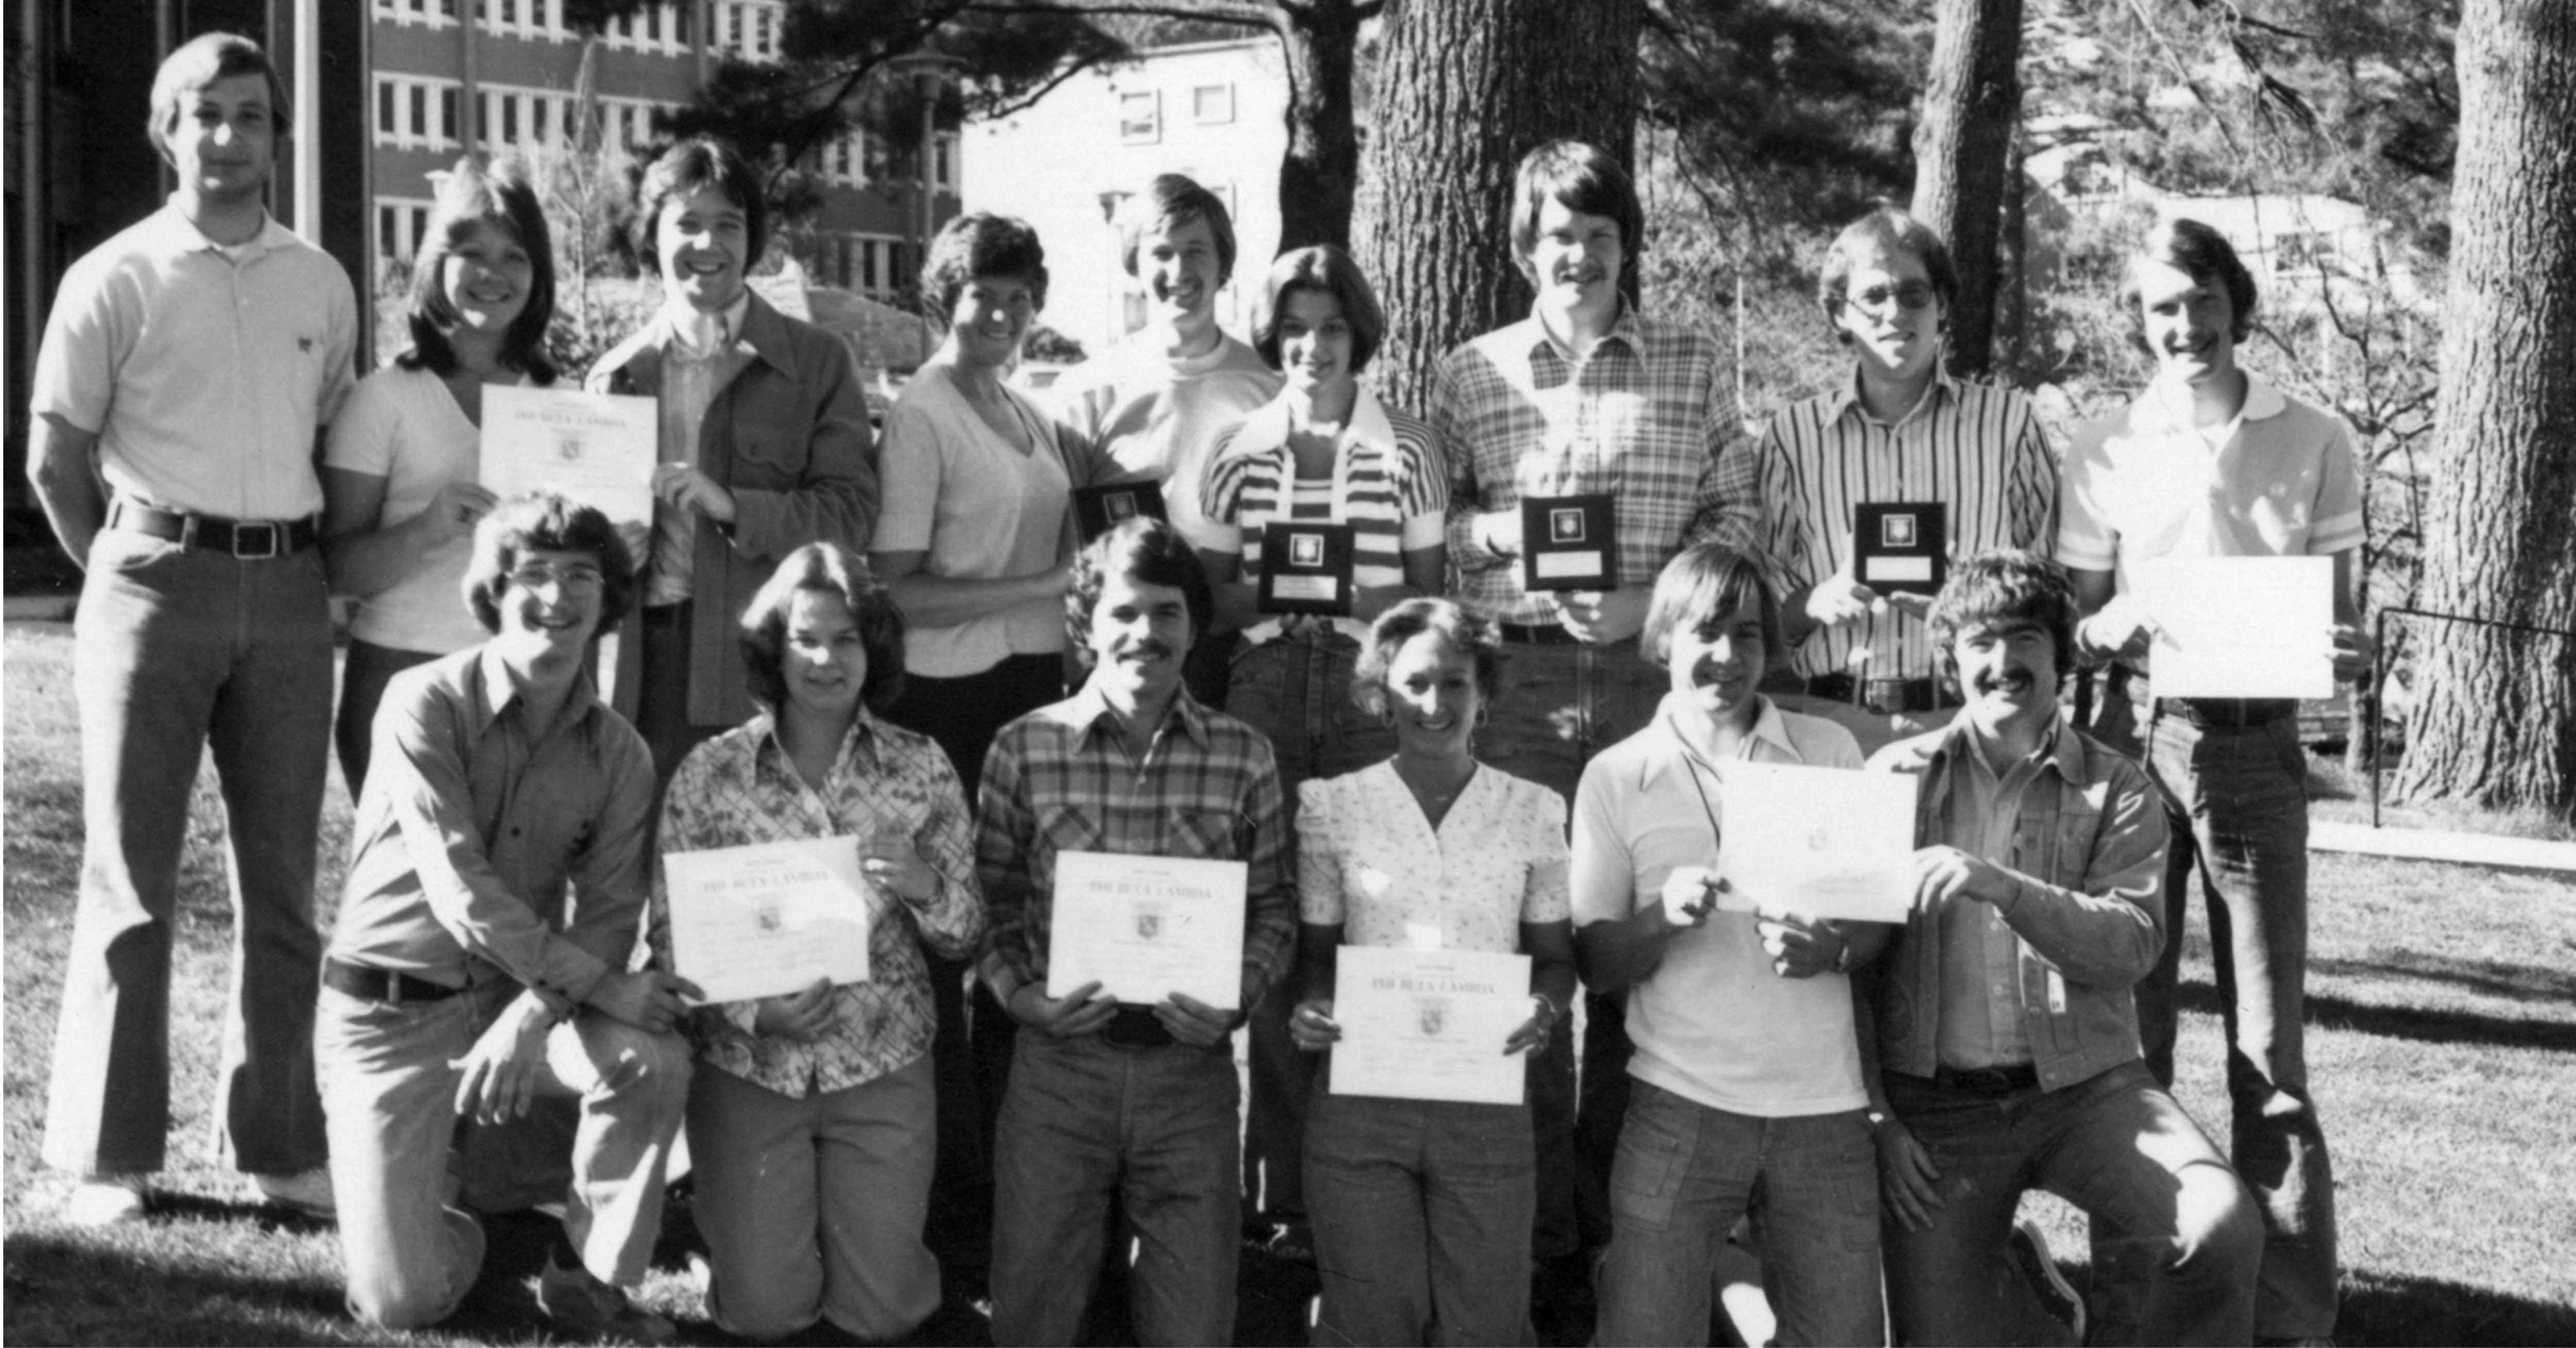 This image shows six members of the College of Business fraternity Phi Beta Lambda standing outside at Appalachian State University (1967-current) holding certificates and plaques in April 1976.